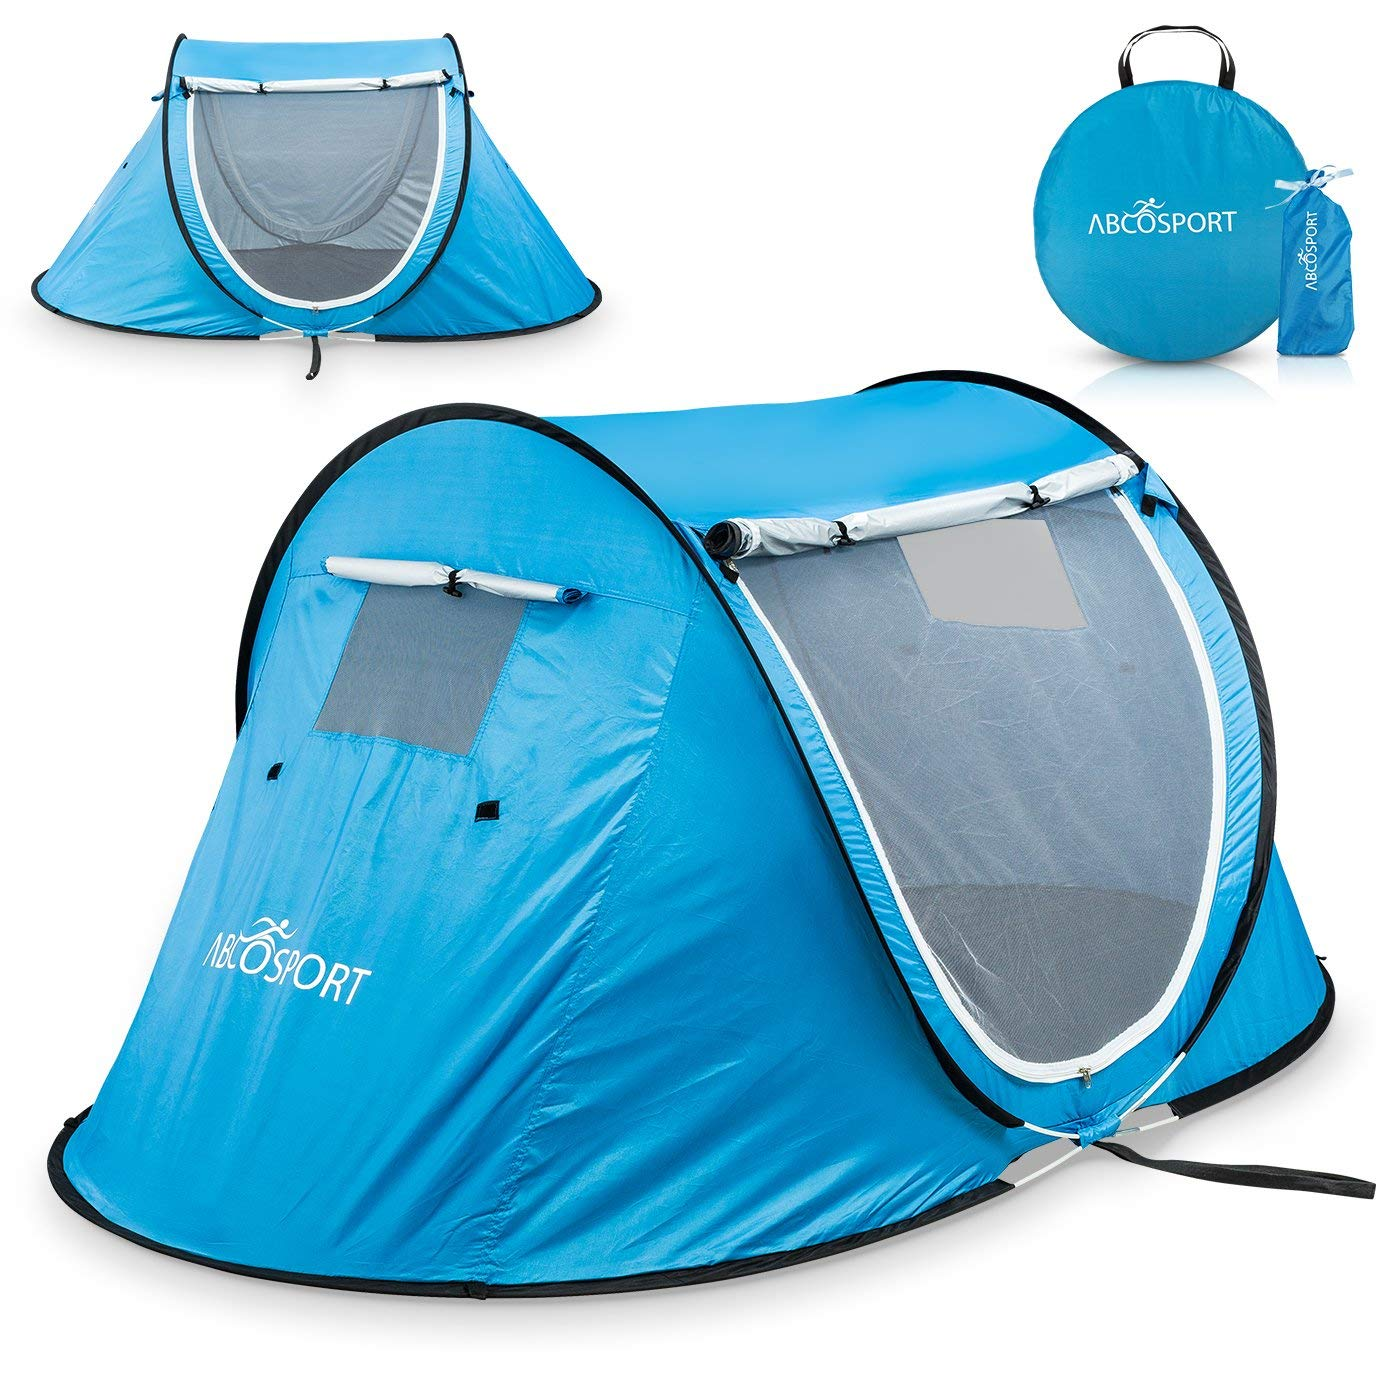 Pop-up Tent an Automatic Instant Portable Cabana Beach Tent - Suitable for Upto 2 People - Doors on Both Sides - Water-Resistant & UV Protection Sun Shelter - with Carrying Bag (Sky Blue) [並行輸入品] B07R4V65RW